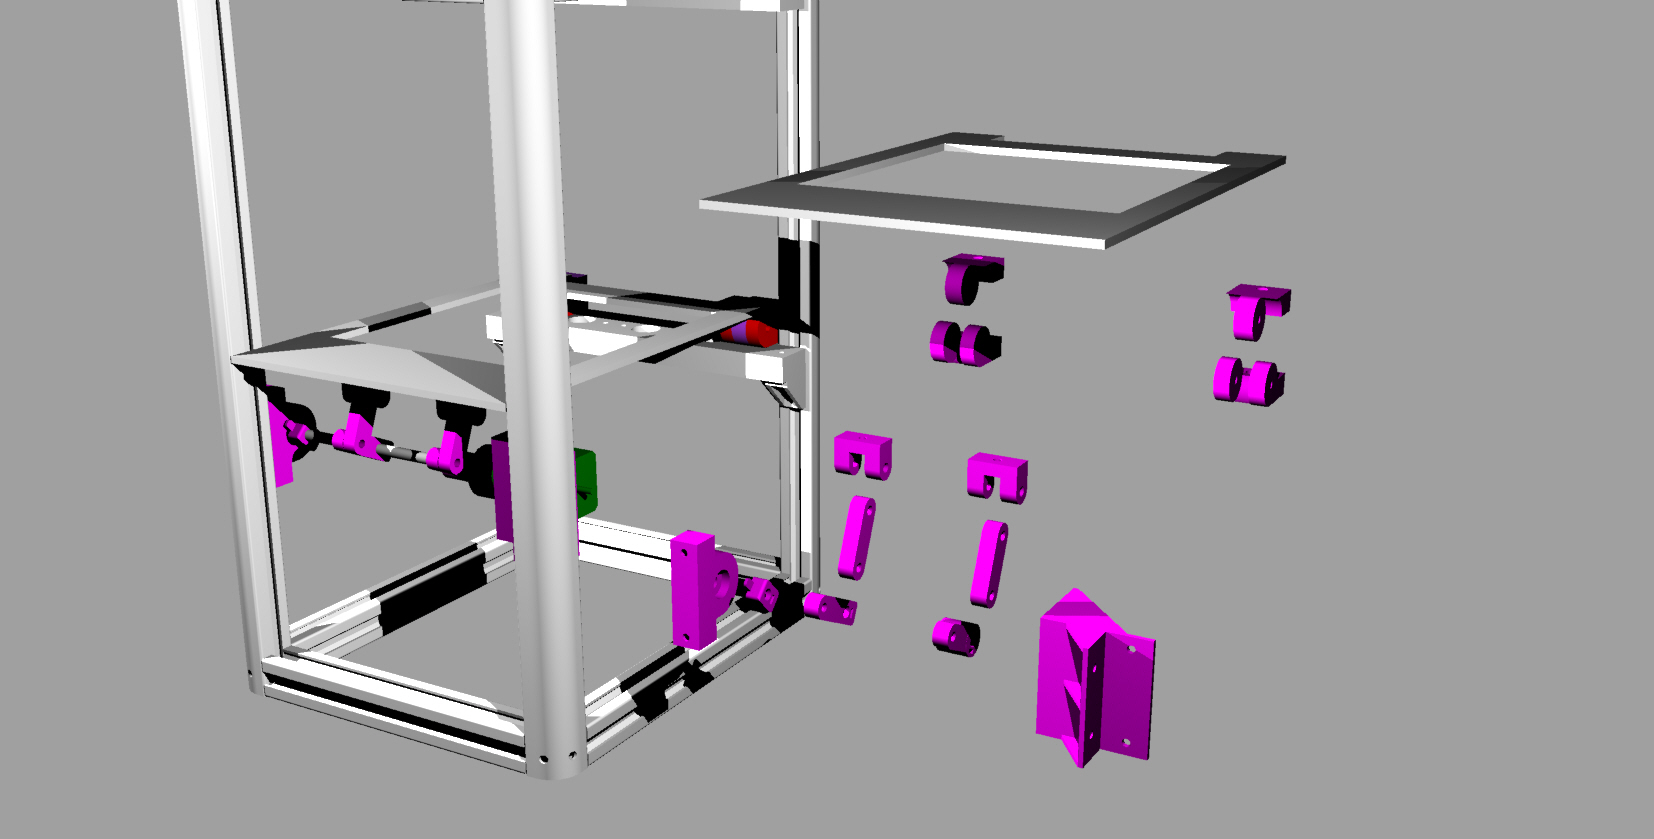 Sla 3d Printer The Fsla Open Electronics Ramps 1 4 Wiring Diagram All Image About Circuit